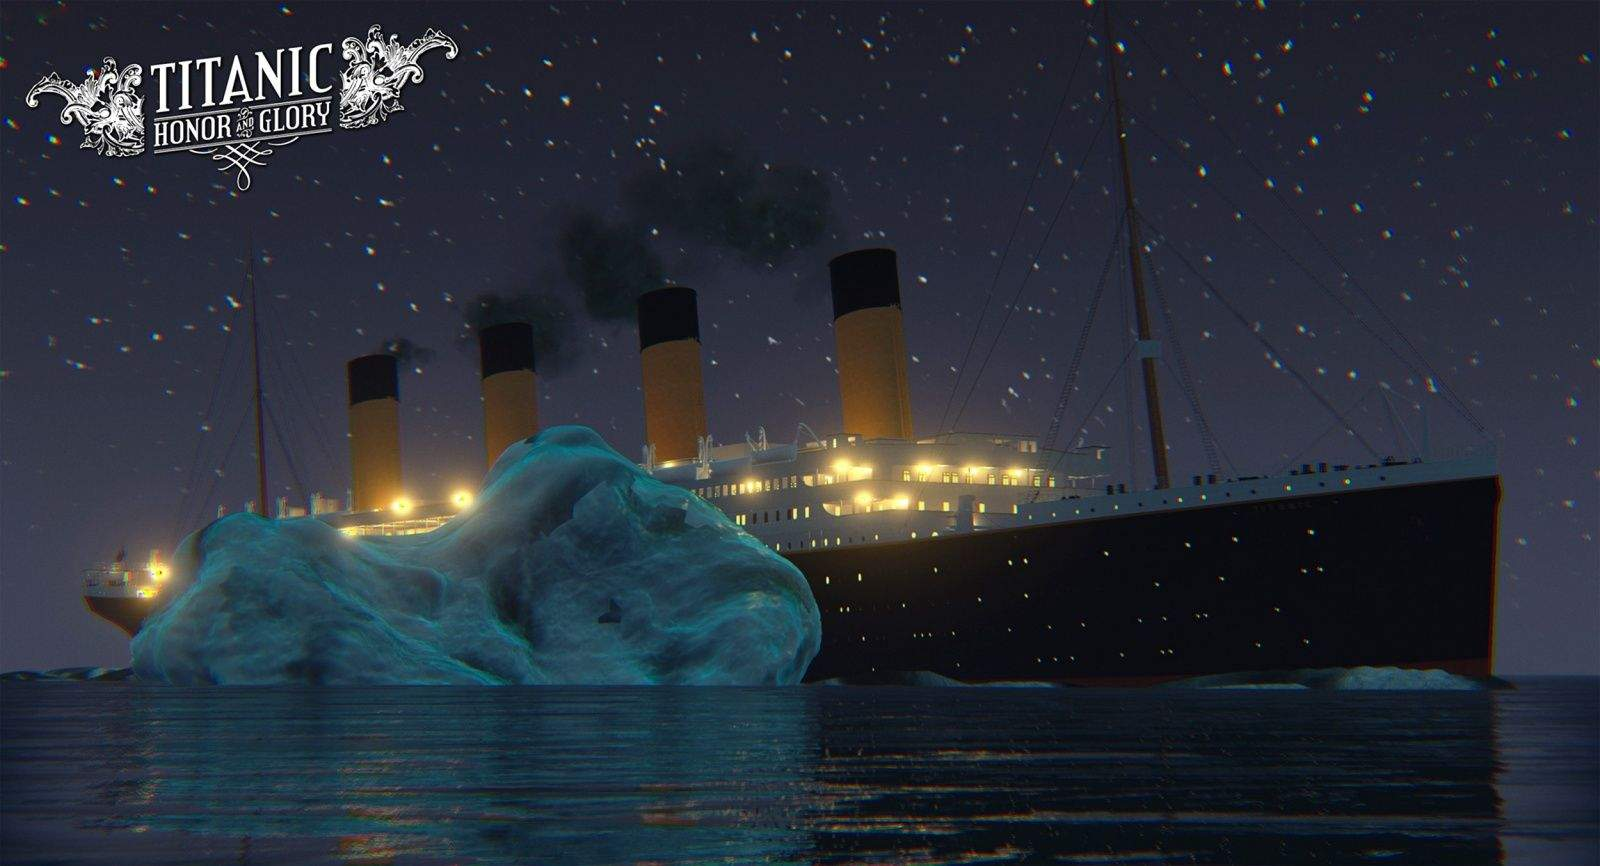 Titanic 3d Wallpaper Free Download Go Down With The Ship Titanic Game Goes Deep On History